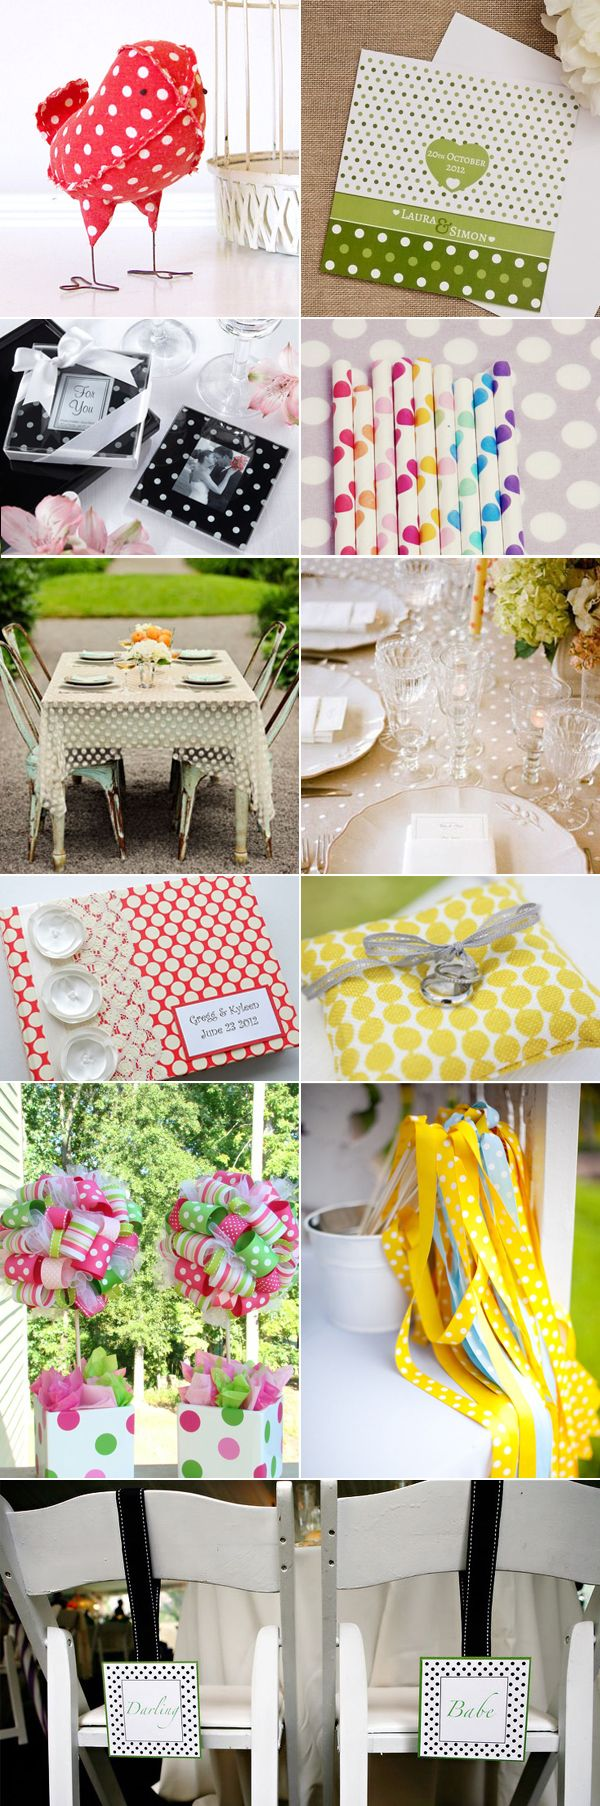 39 Polka-Dot Wedding Inspirations - Decor & Gifts